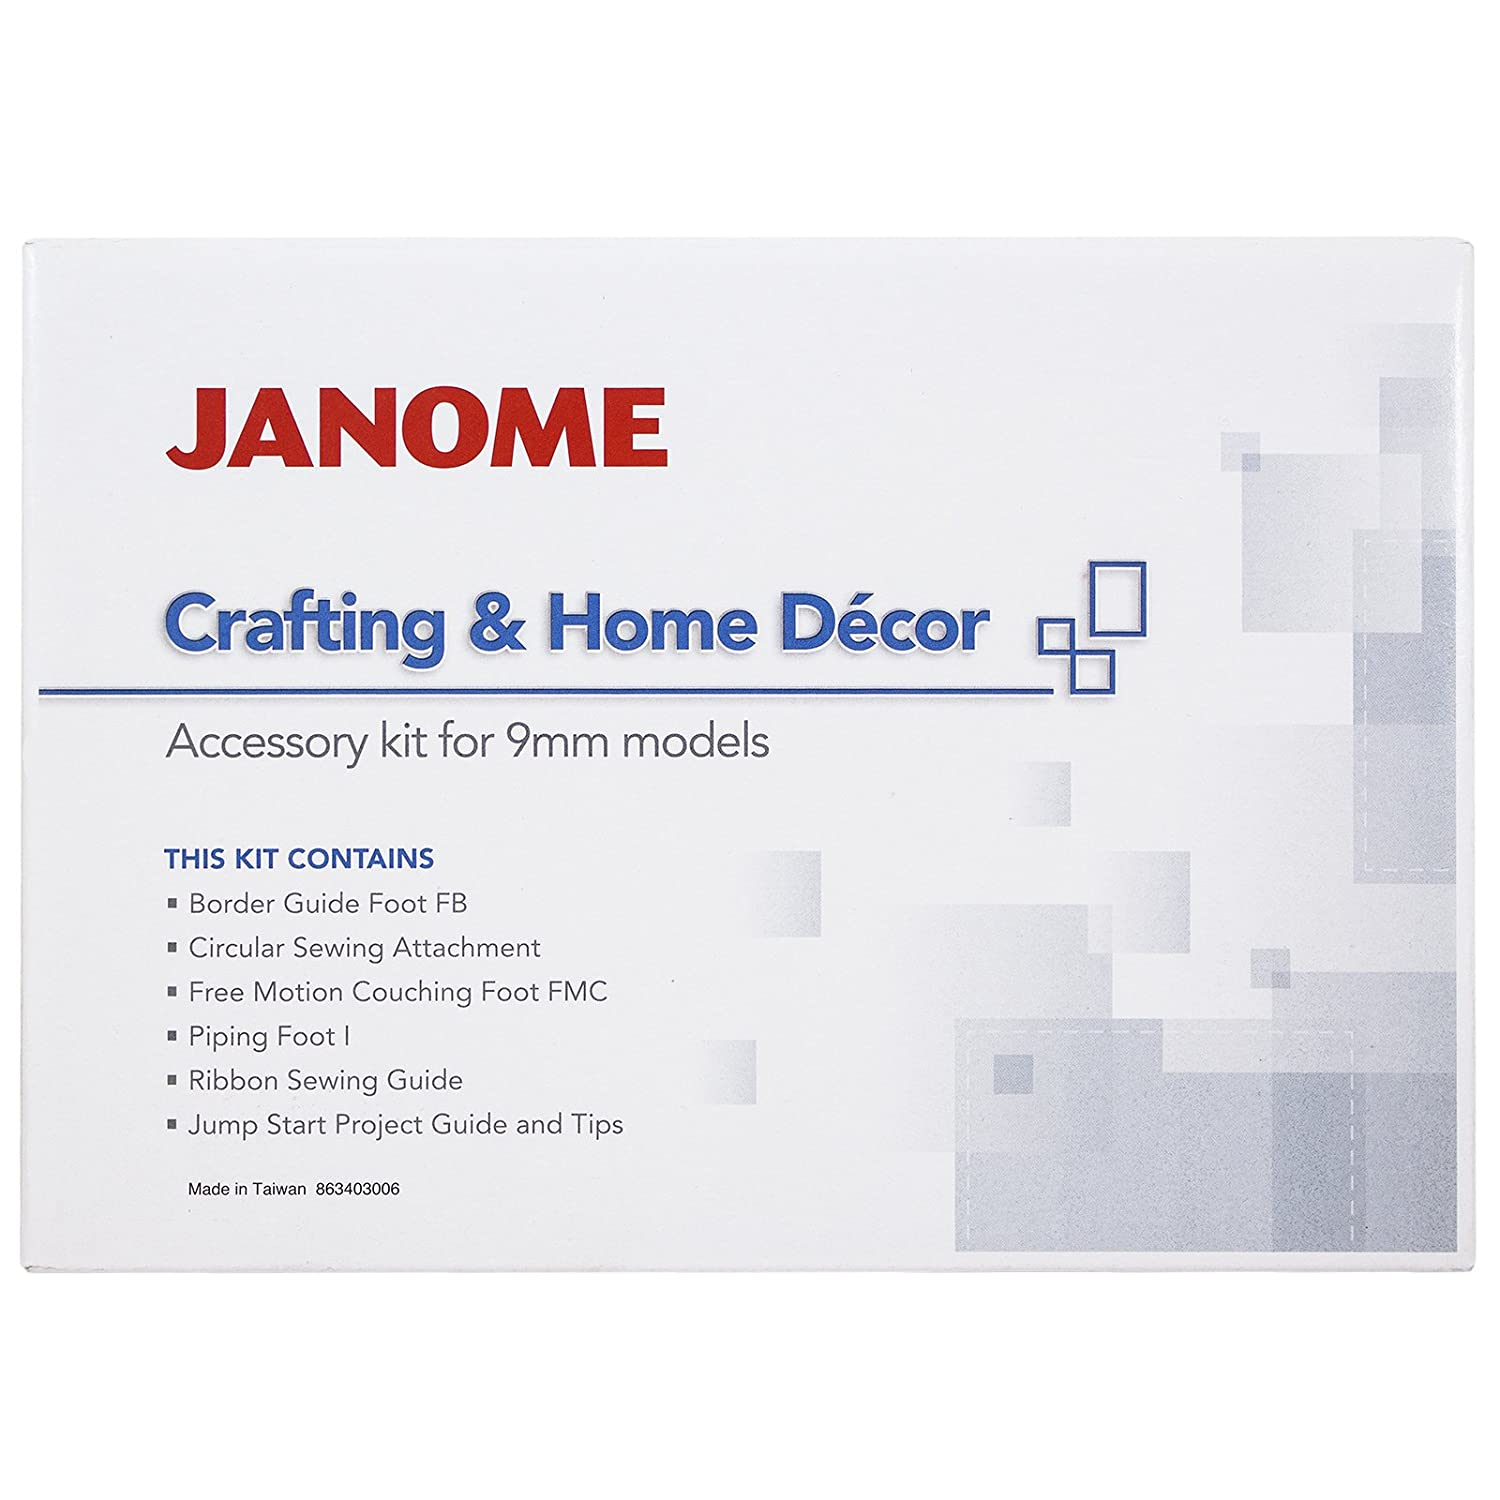 Janome Crafting & Decor Accessory Kit for 9mm machines by Janome   B00UB4I96M